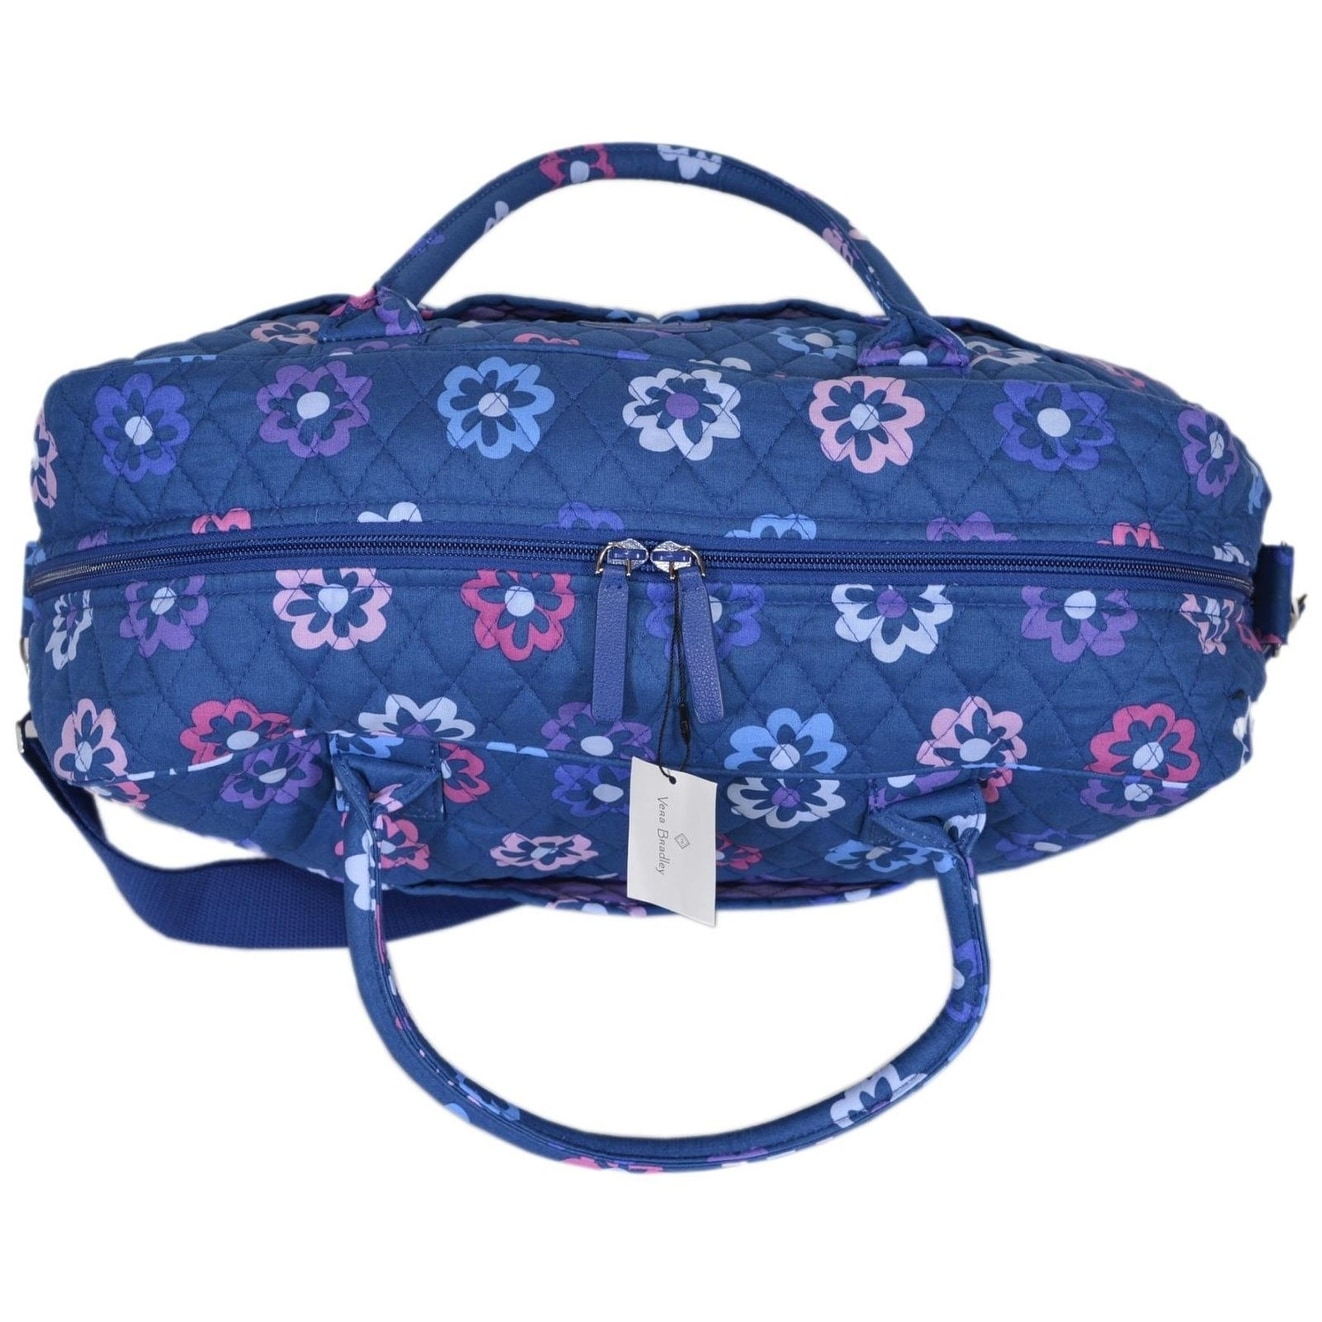 c033df002 Shop Vera Bradley ELLIE FLOWERS Floral Cotton Weekender Duffle Travel Bag  Purse - Free Shipping Today - Overstock - 21219270